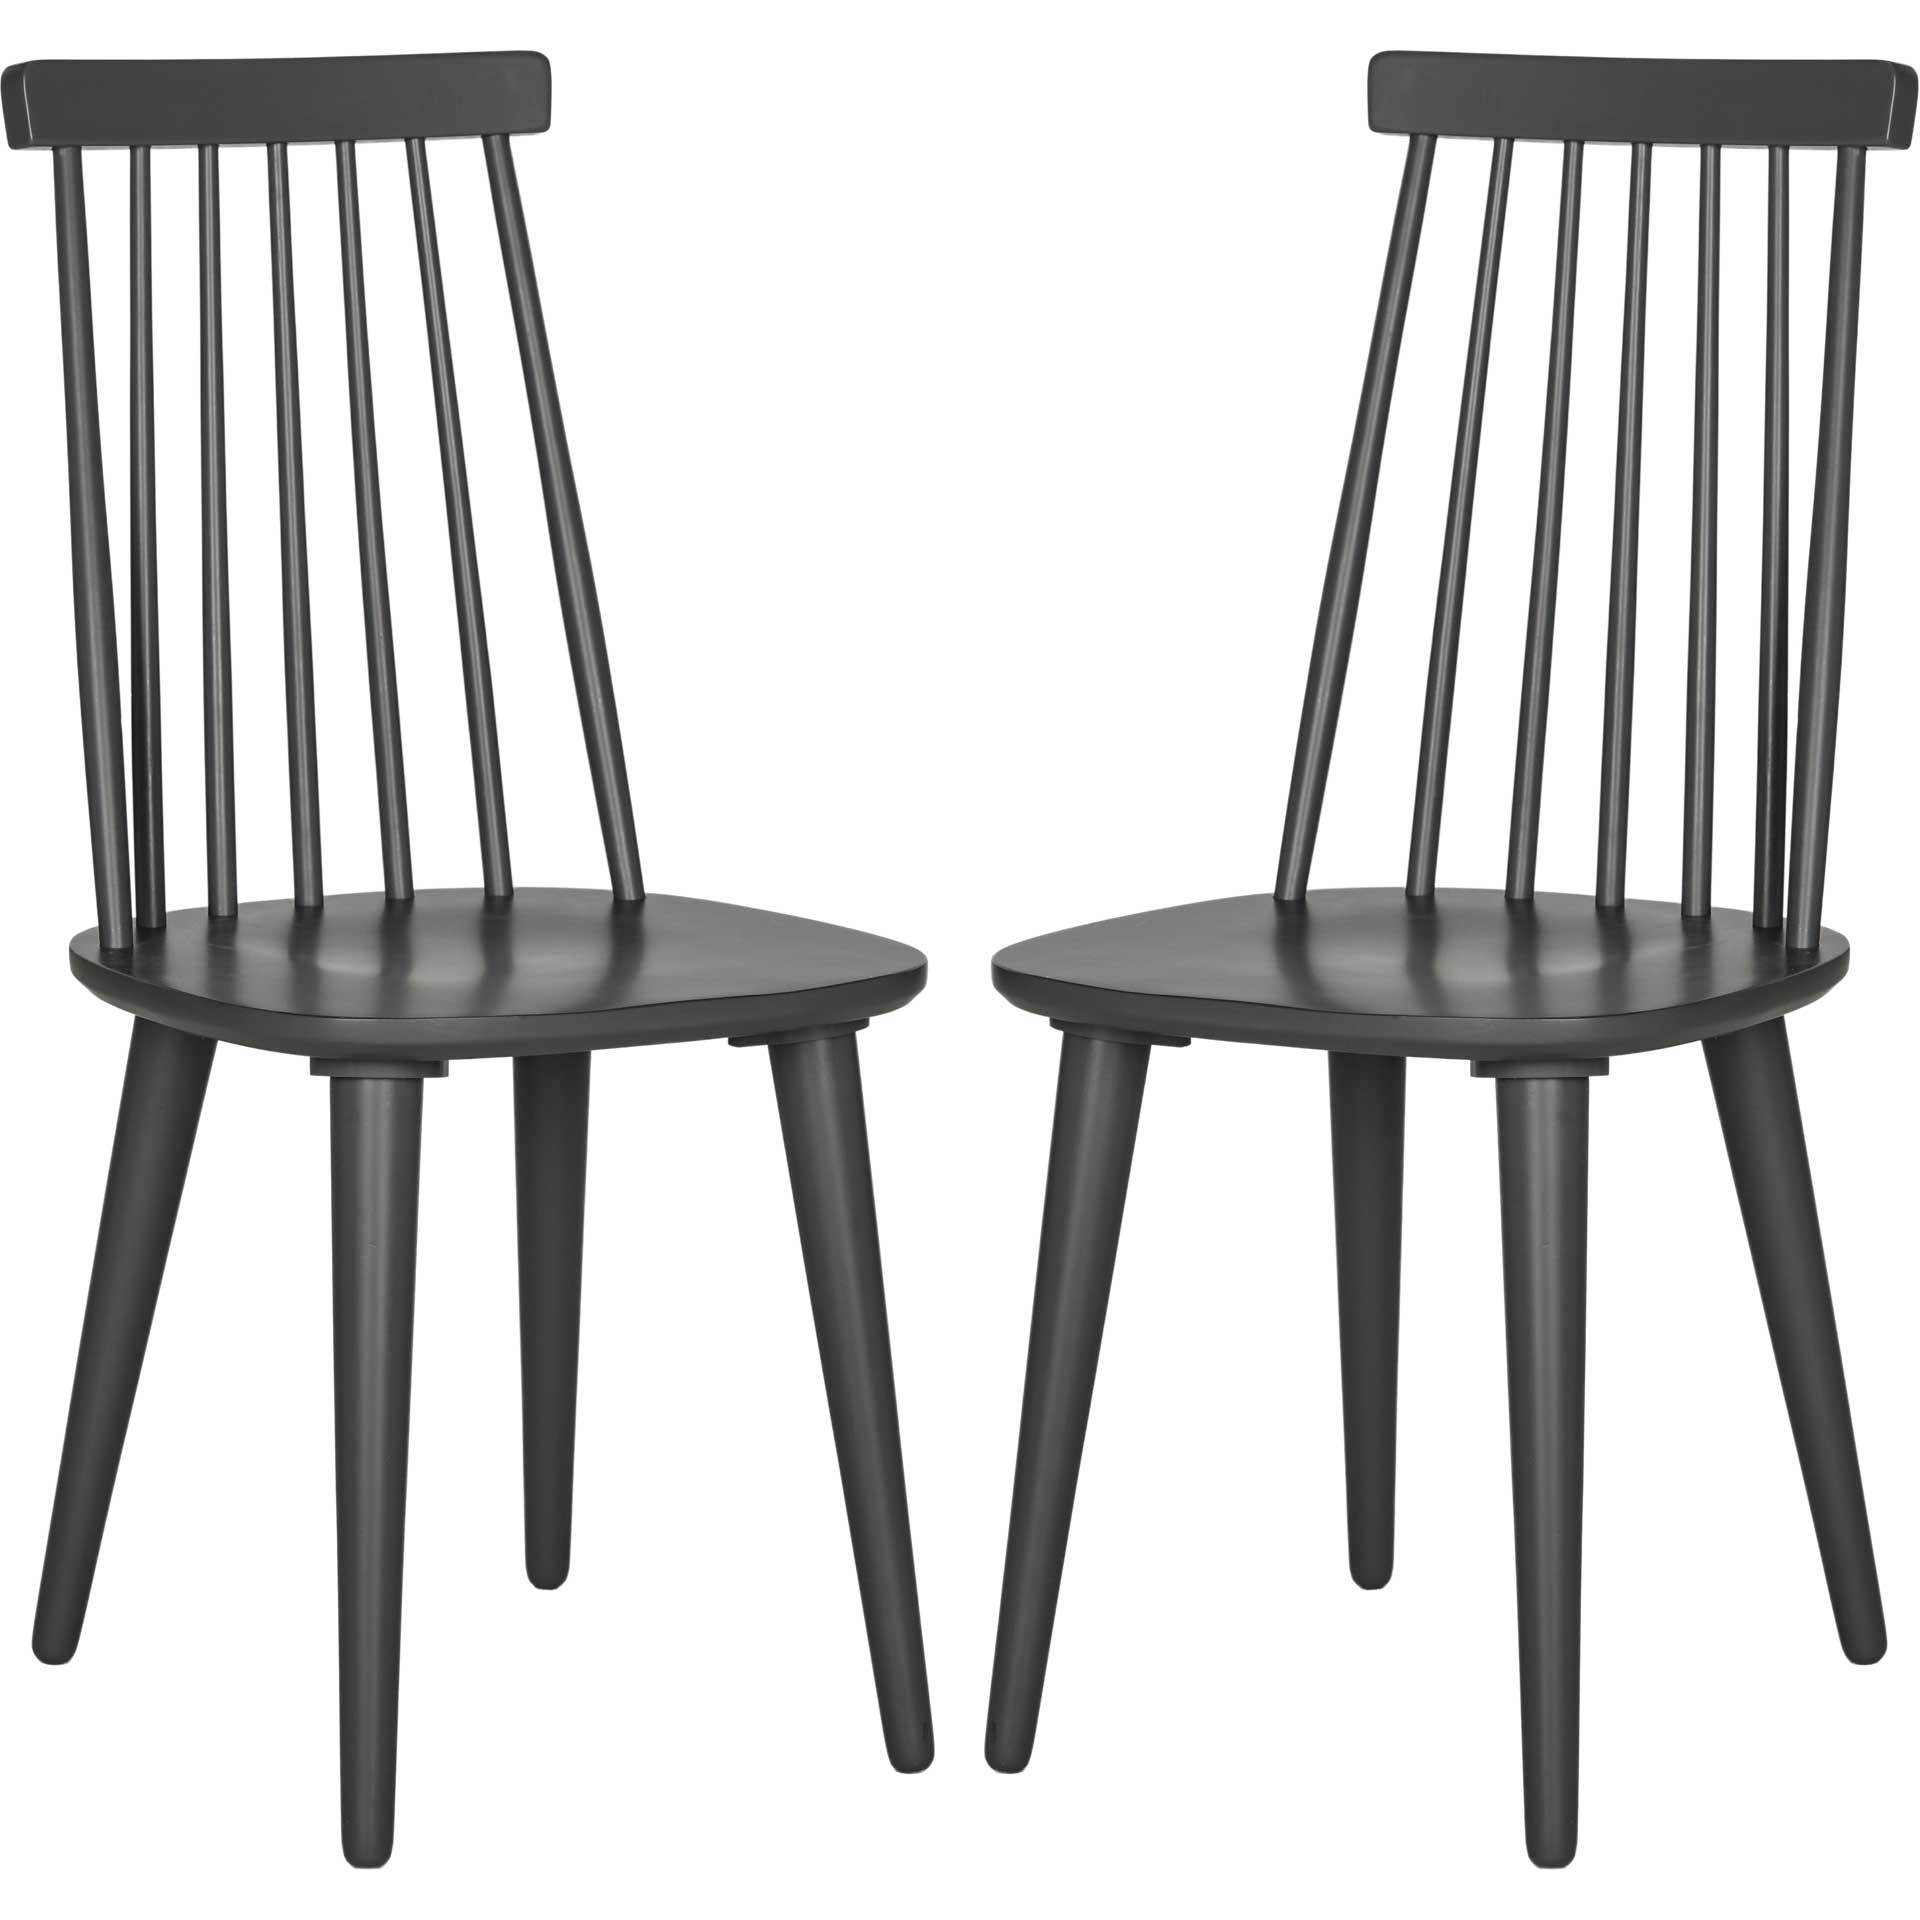 Buckley Spindle Side Chair Gray (Set of 2)